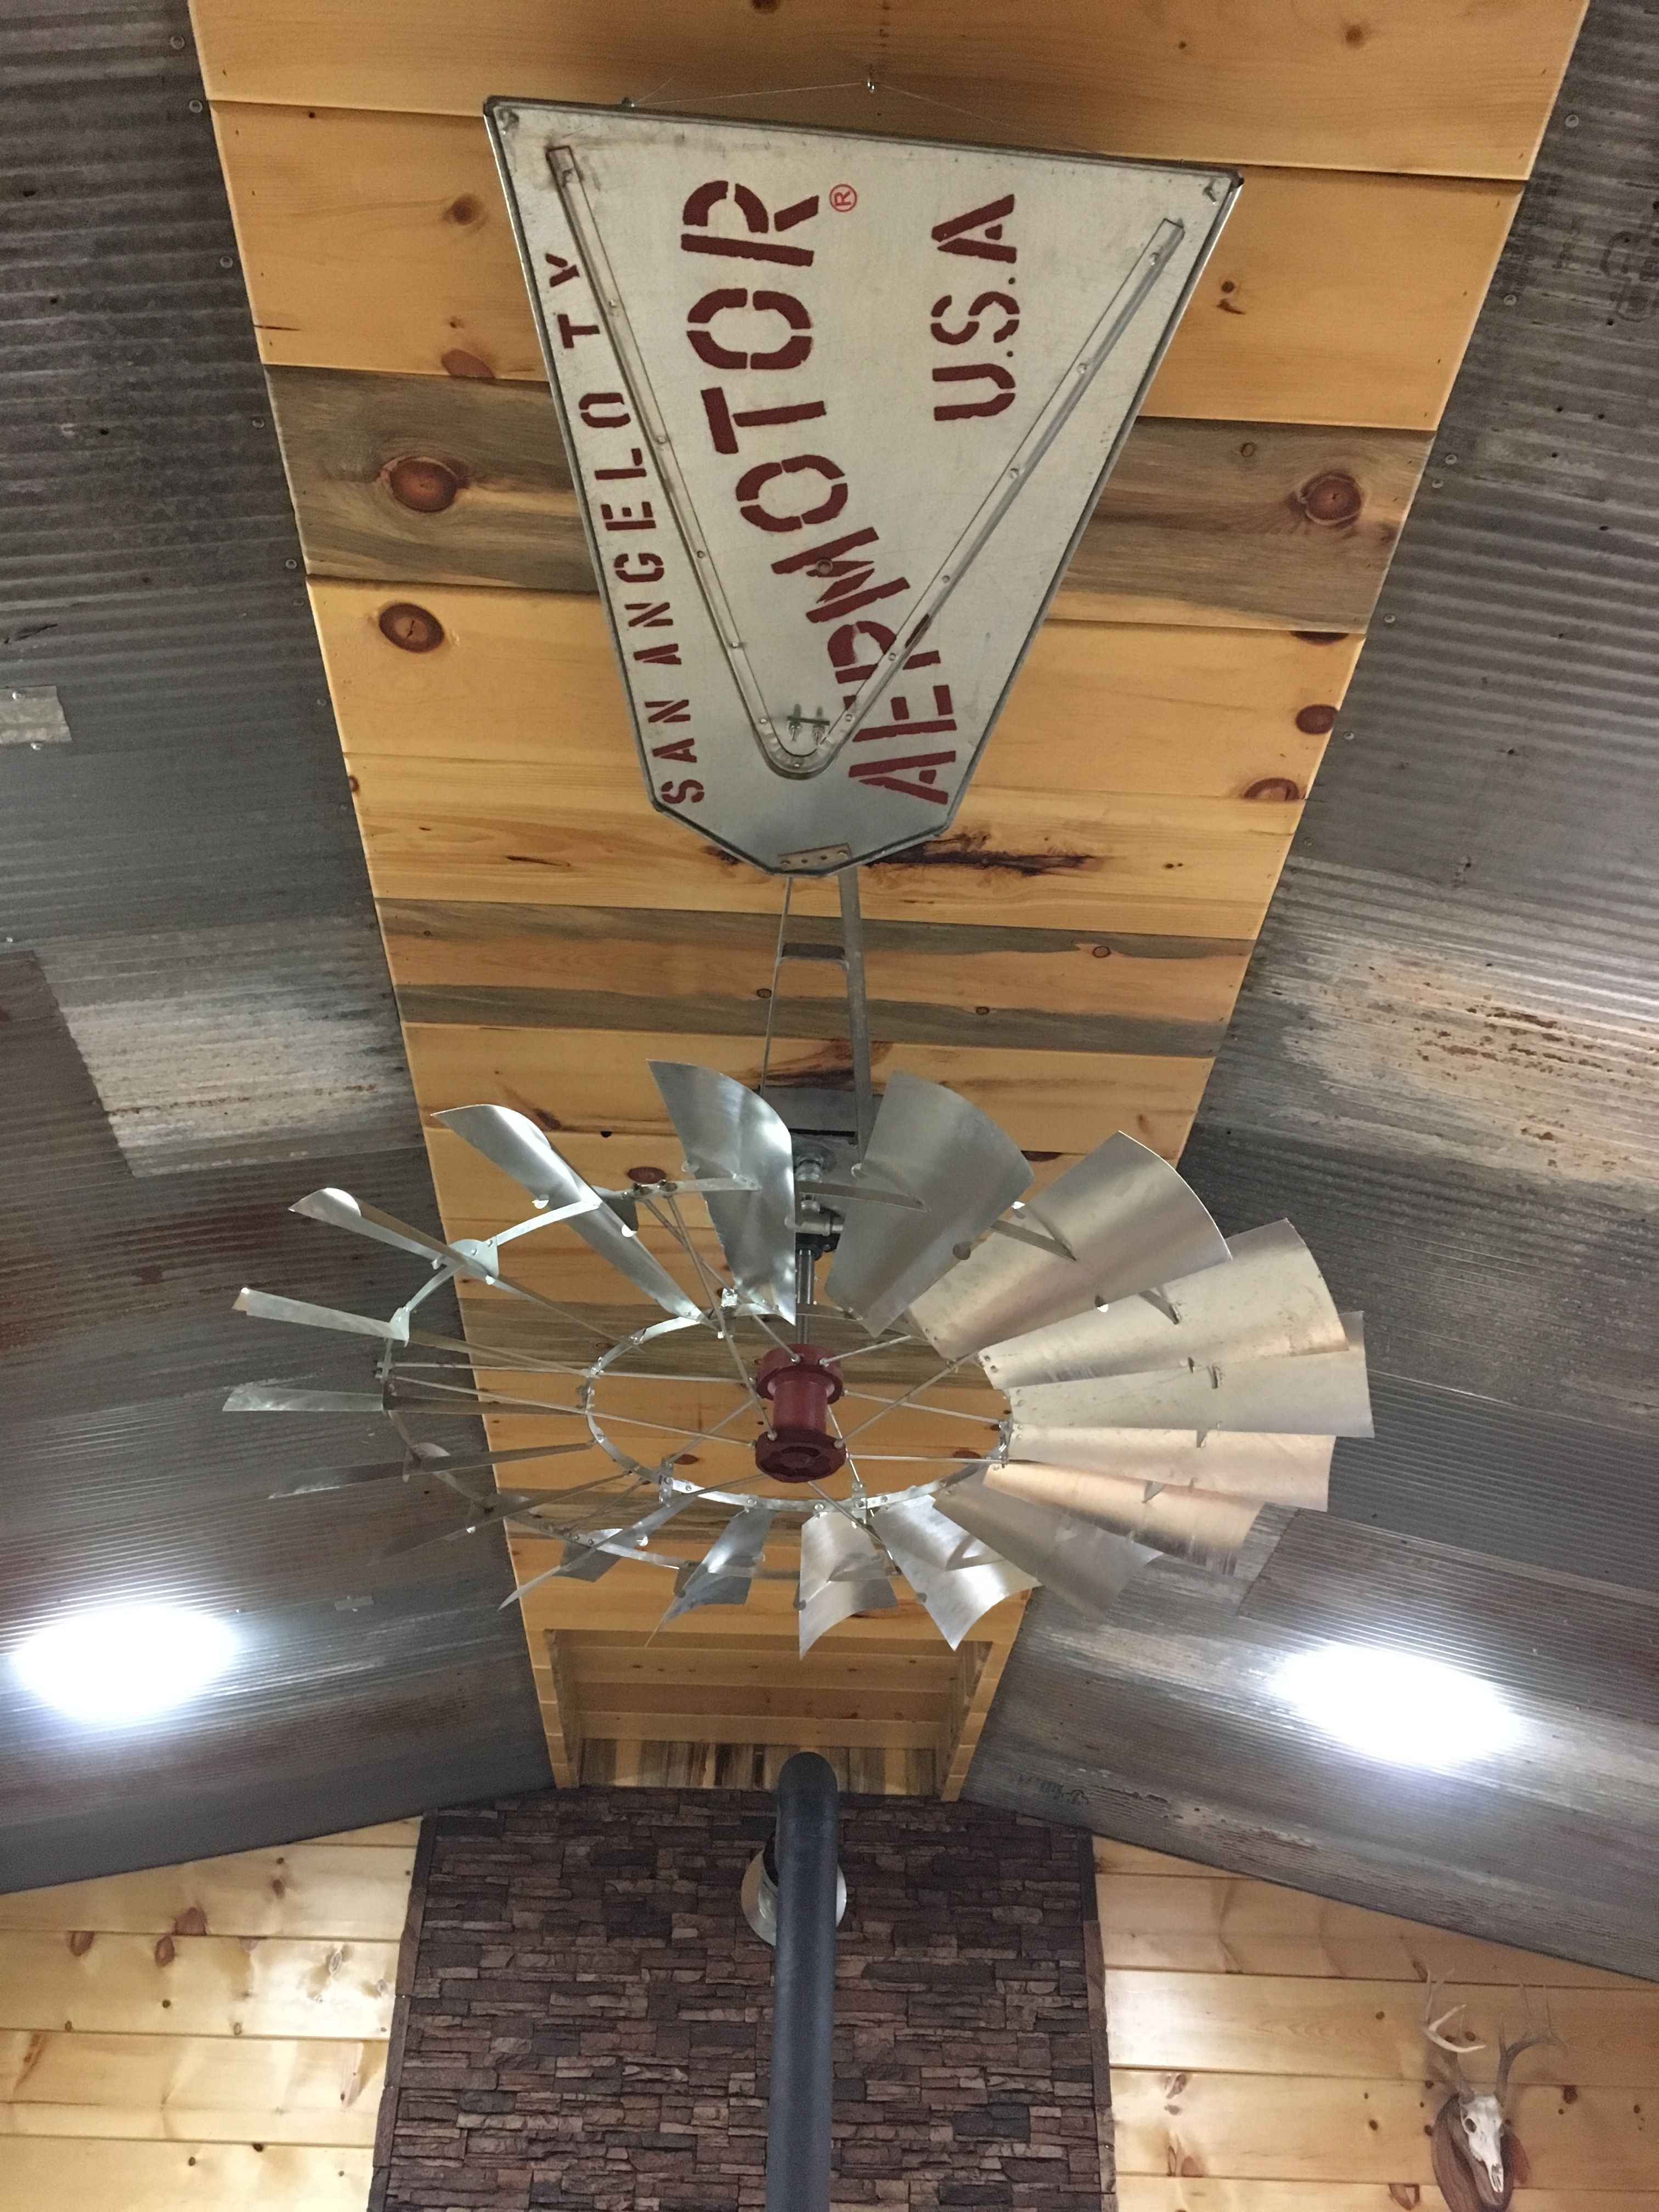 6 New Aermotor Windmill Ceiling Fan With Vane In A Beautiful